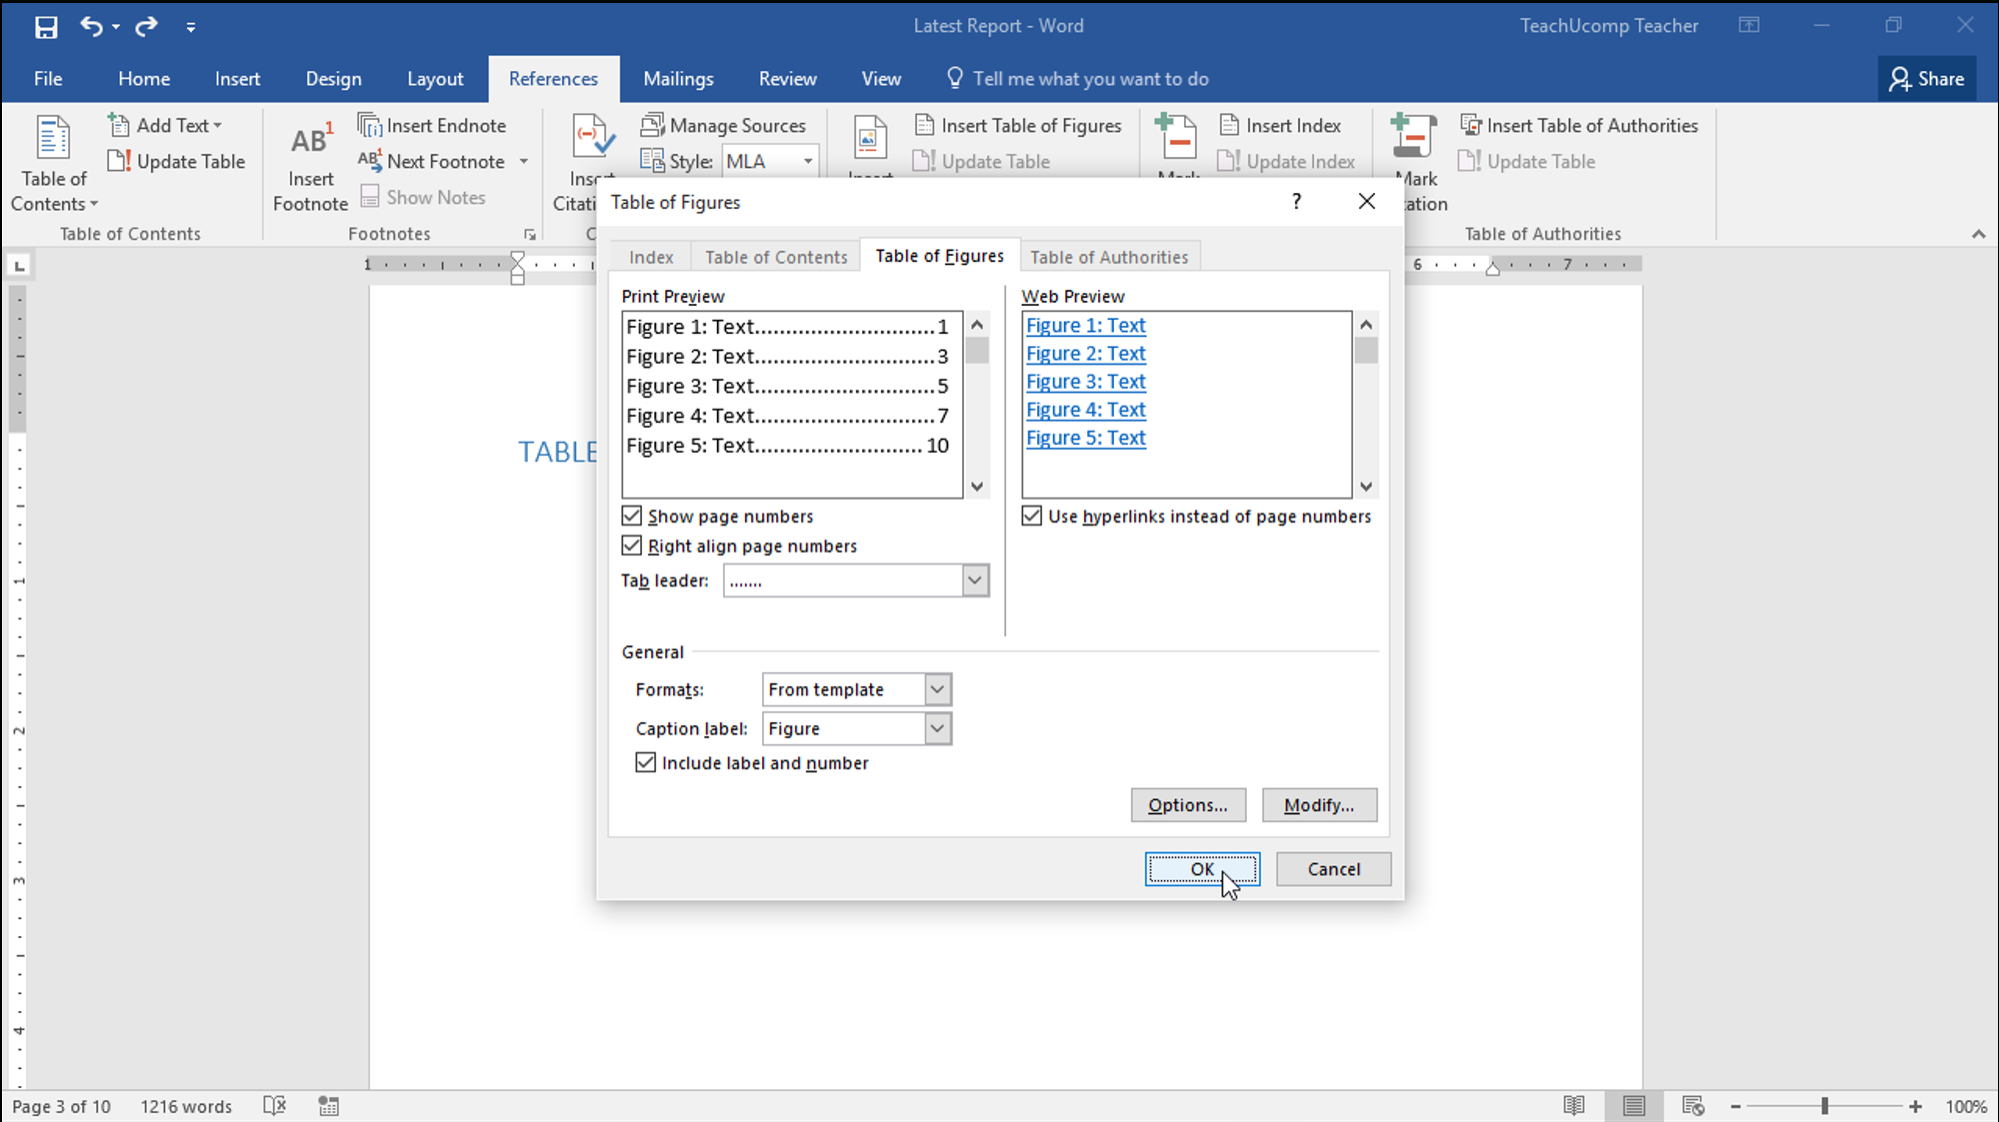 Insert A Table Of Figures In Word - Teachucomp, Inc. Pertaining To Microsoft Word Table Of Contents Template